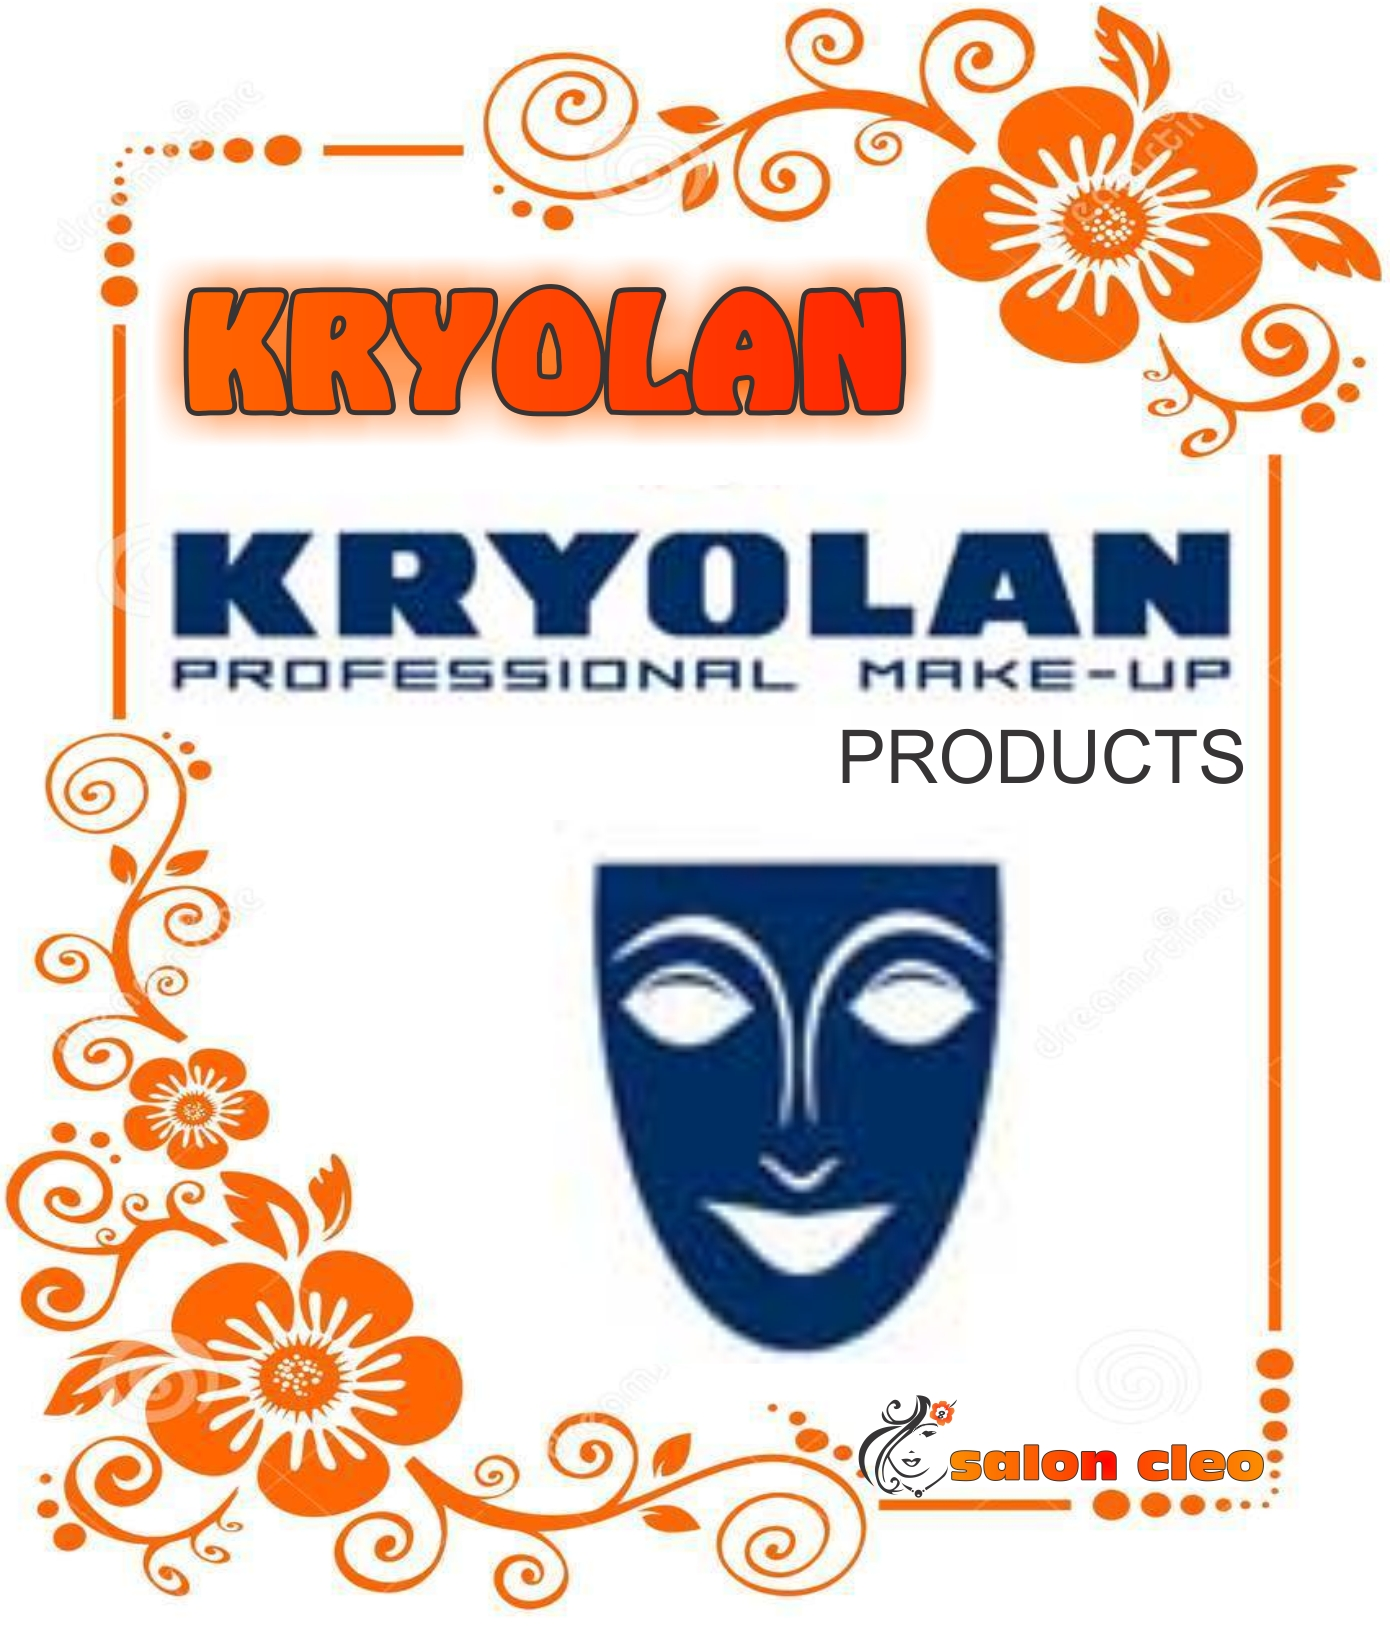 KRYOLAN MAKEUP KRYOLAN COSMETIC PRODUCTS KRYOLAN FOUNDATION EXLCLUSIVE AT SALON CLEO PHOENIX 0315002353